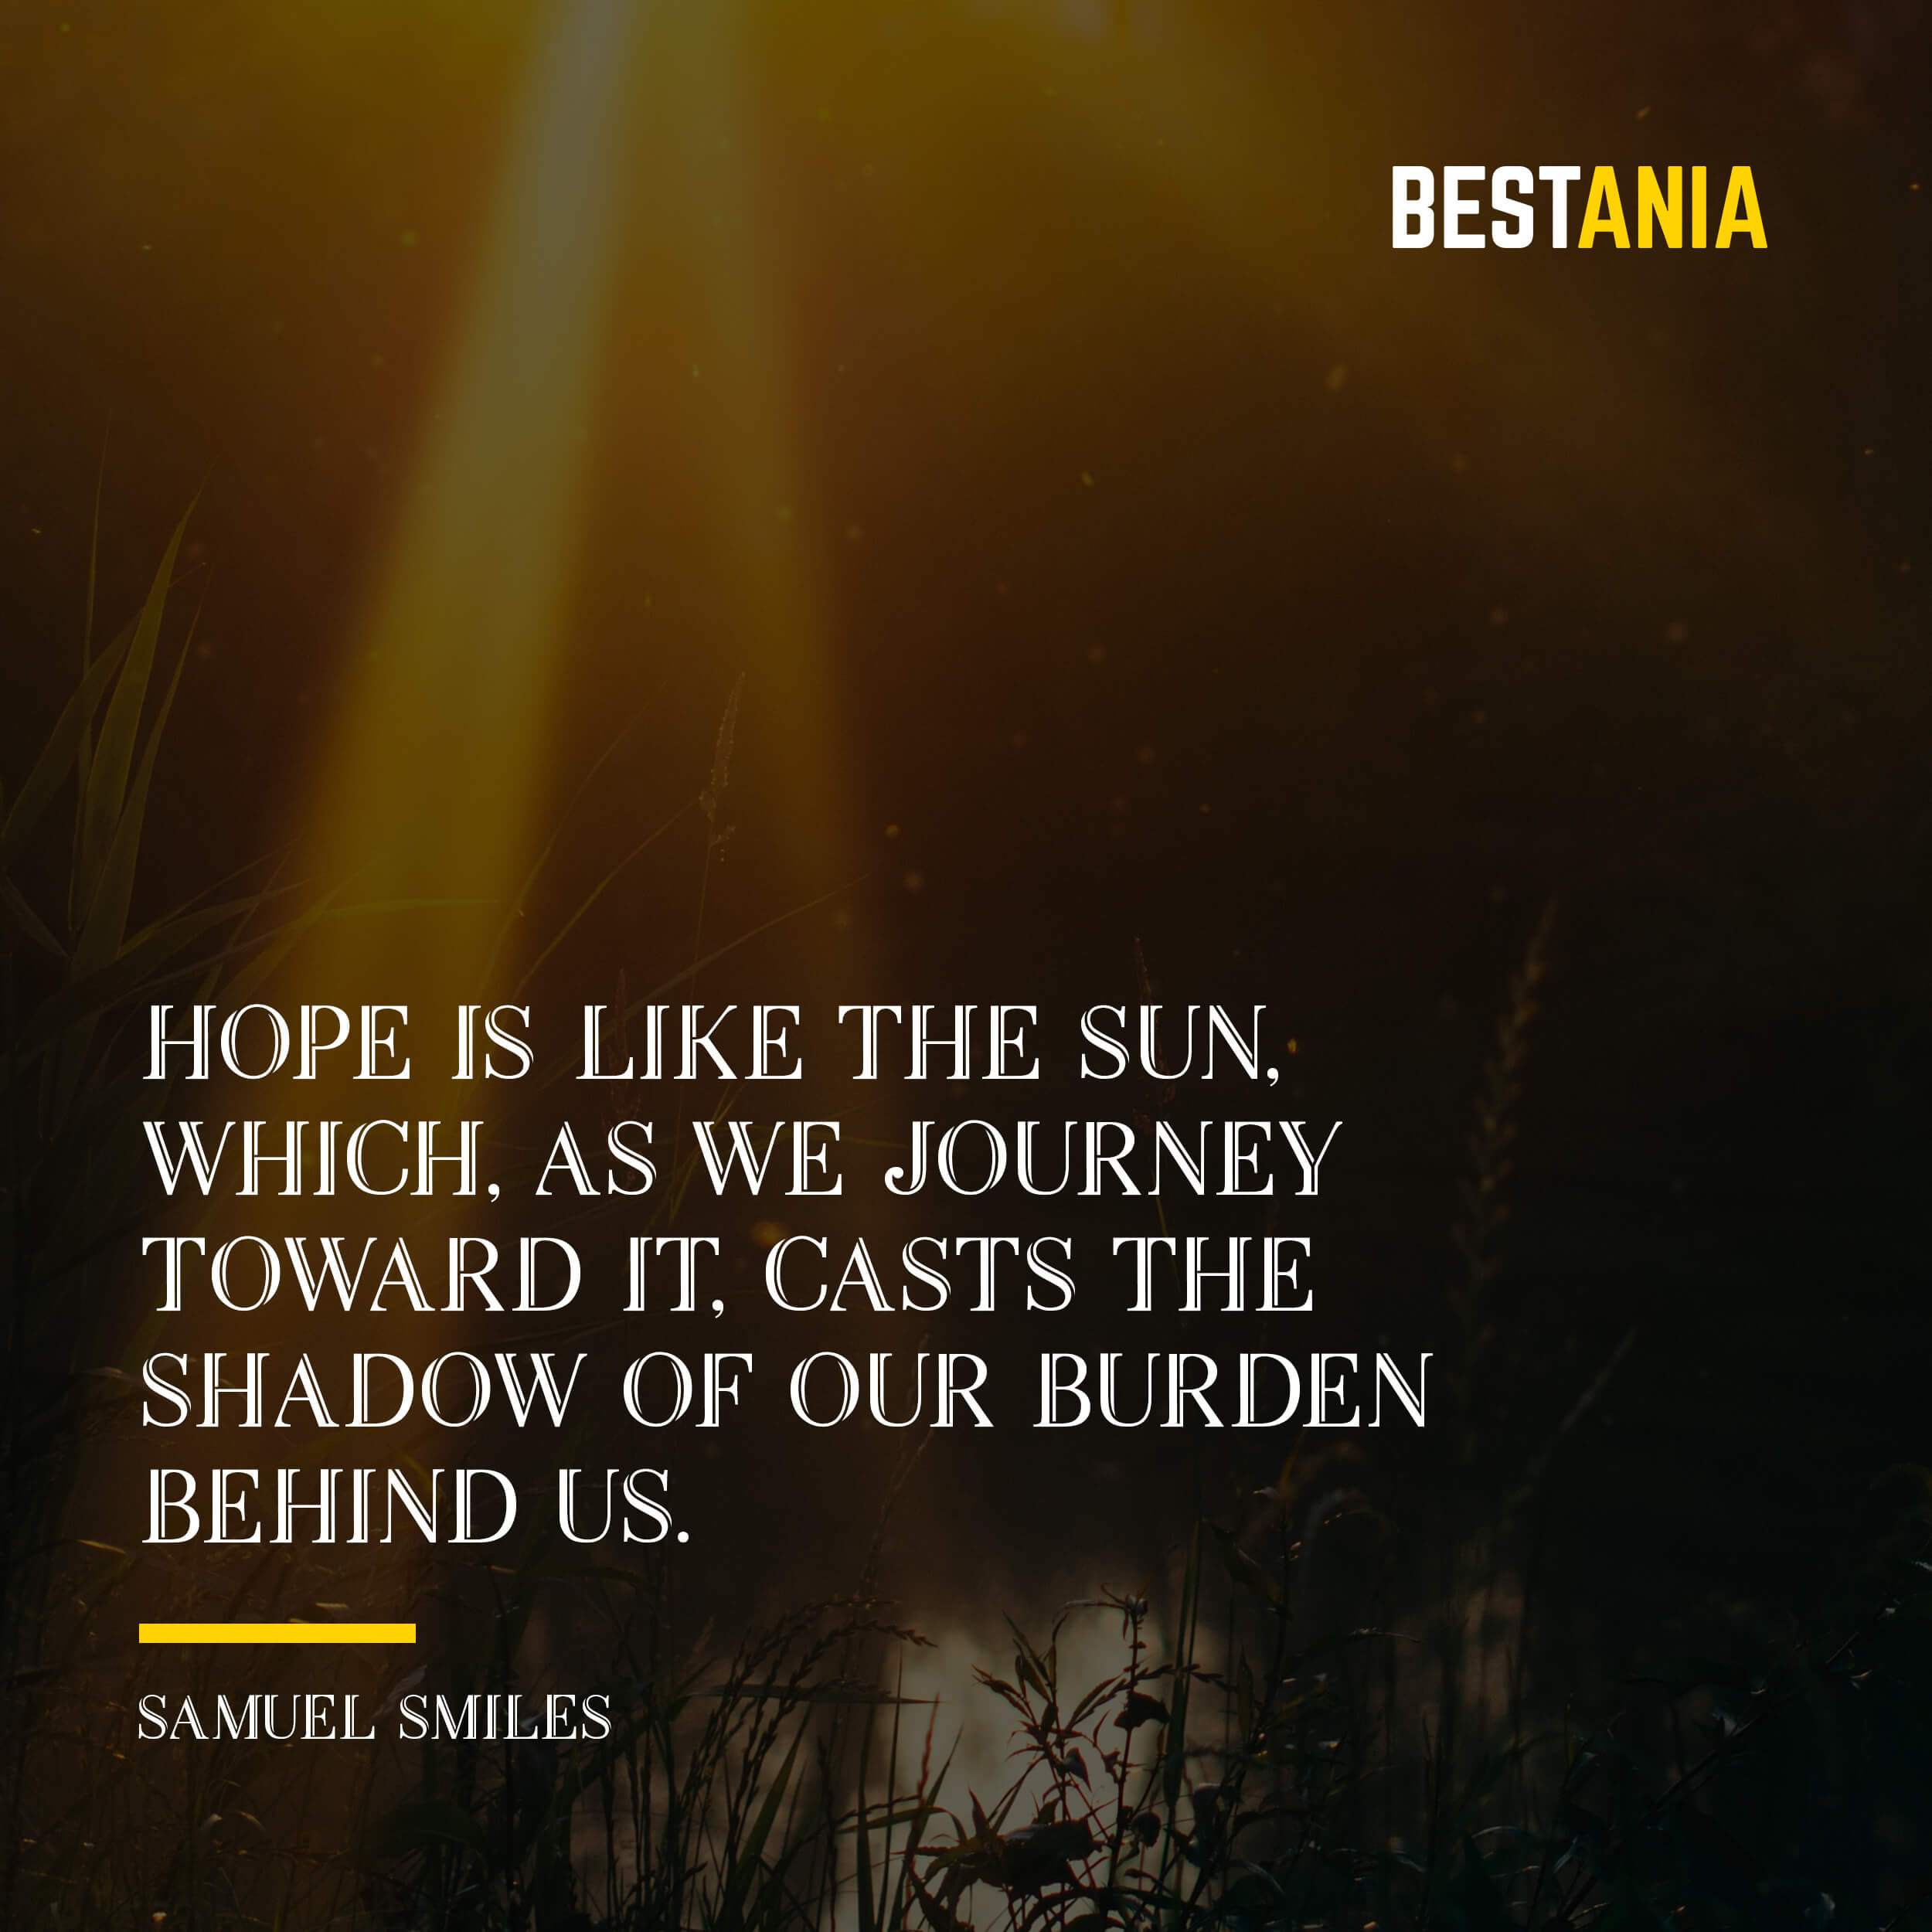 """HOPE IS LIKE THE SUN, WHICH, AS WE JOURNEY TOWARD IT, CASTS THE SHADOW OF OUR BURDEN BEHIND US."" SAMUEL SMILES"